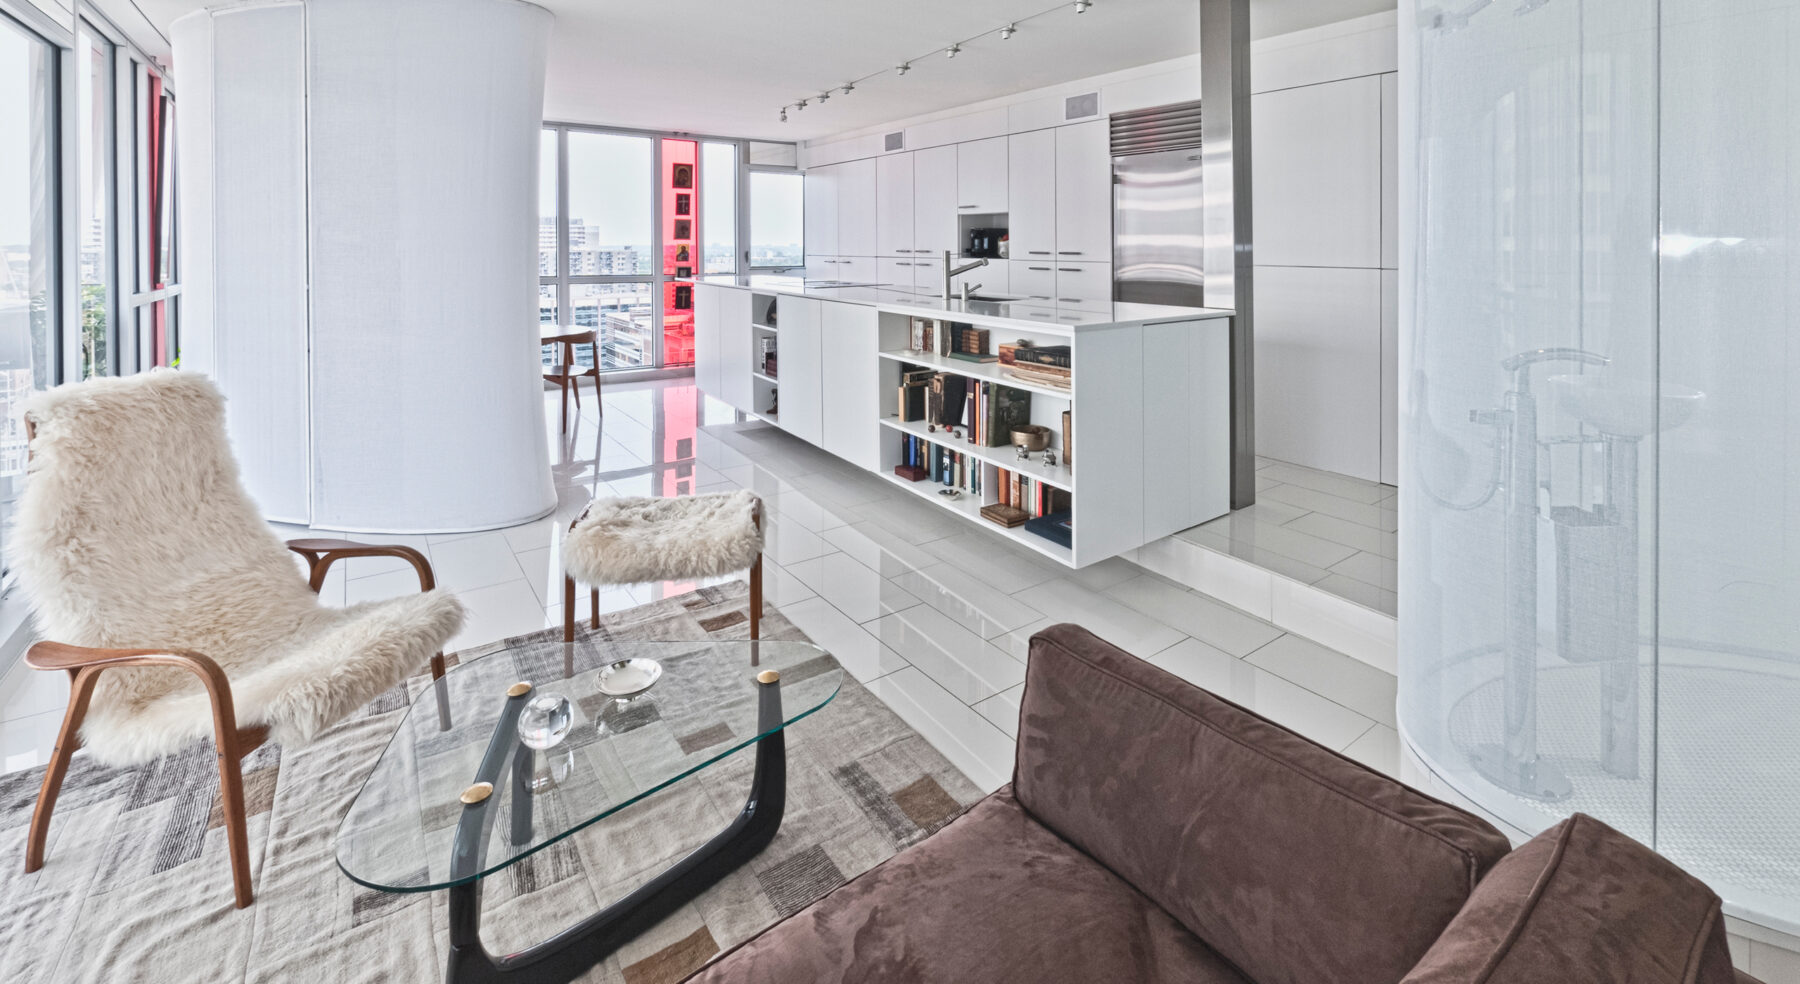 Redeveloper Apartment living area with kitchen in background